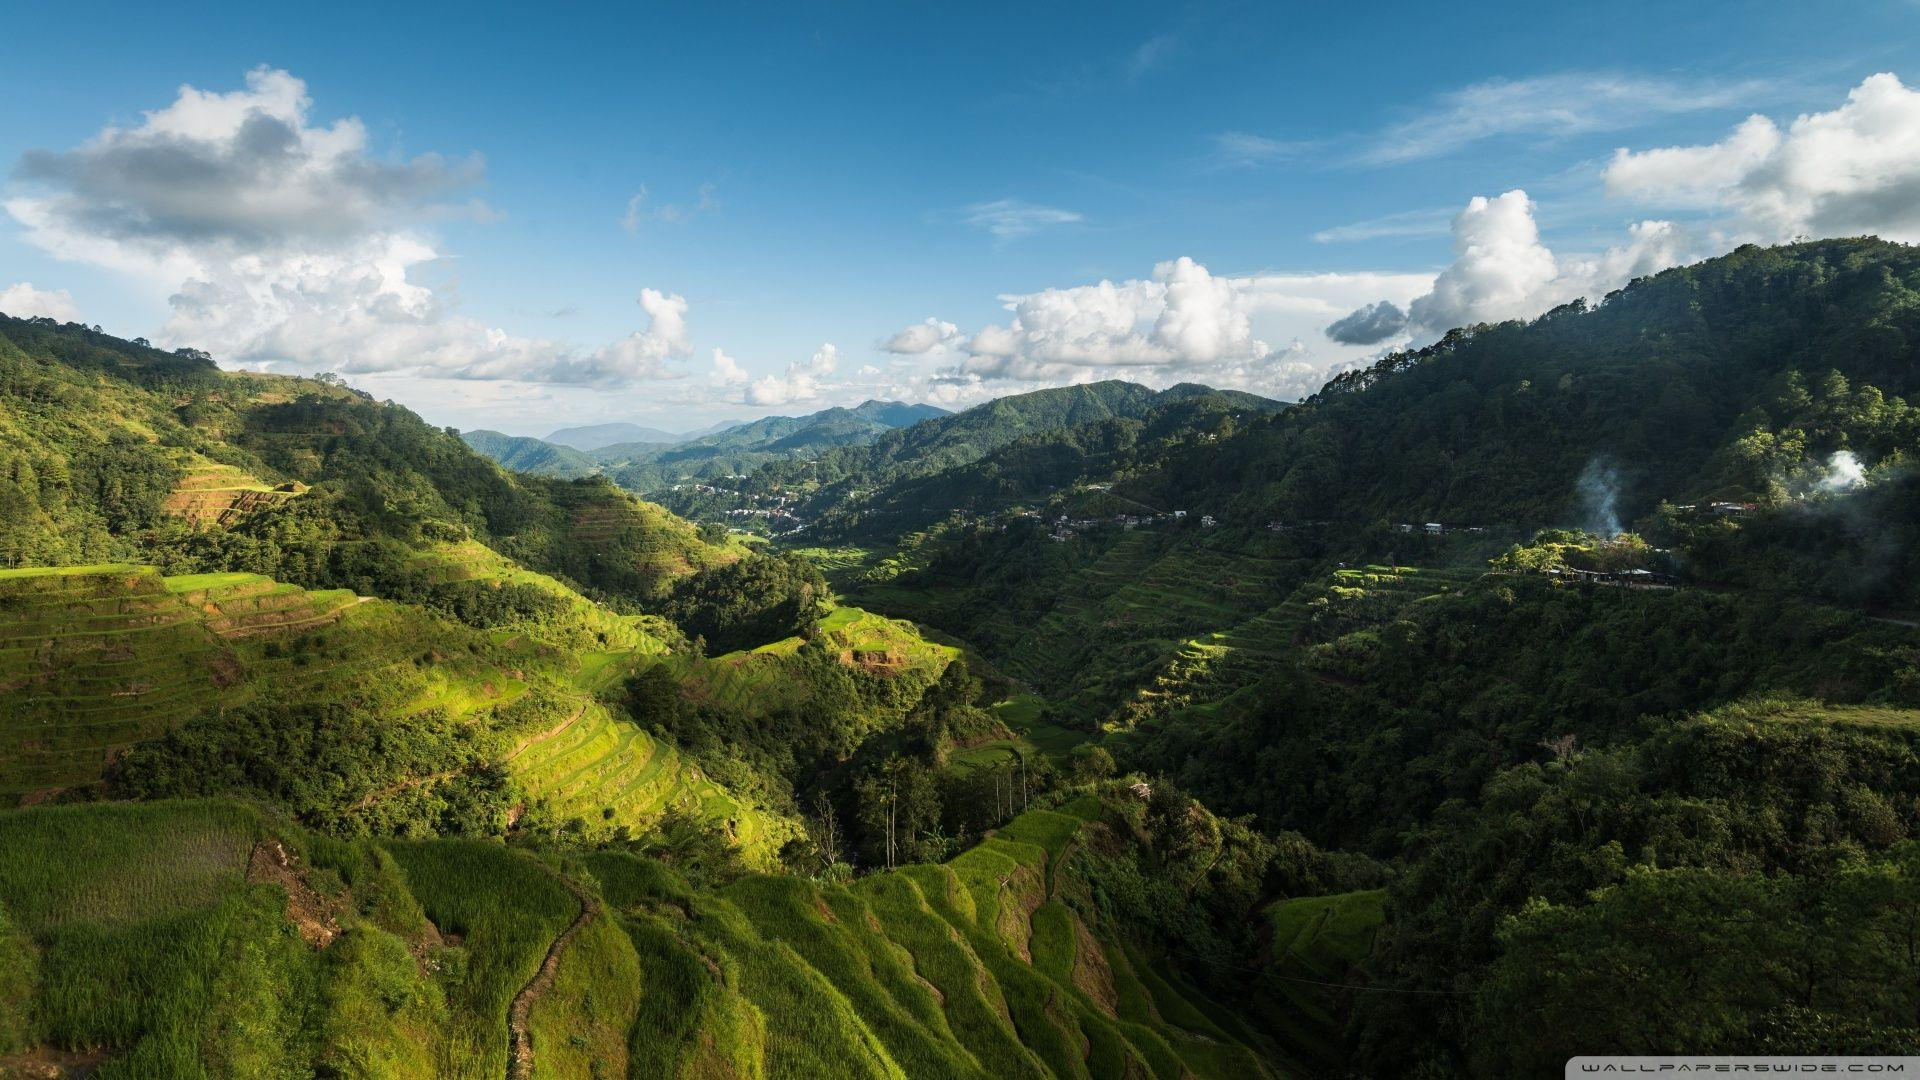 Philippines Landscape HD desktop wallpaper : Widescreen ...